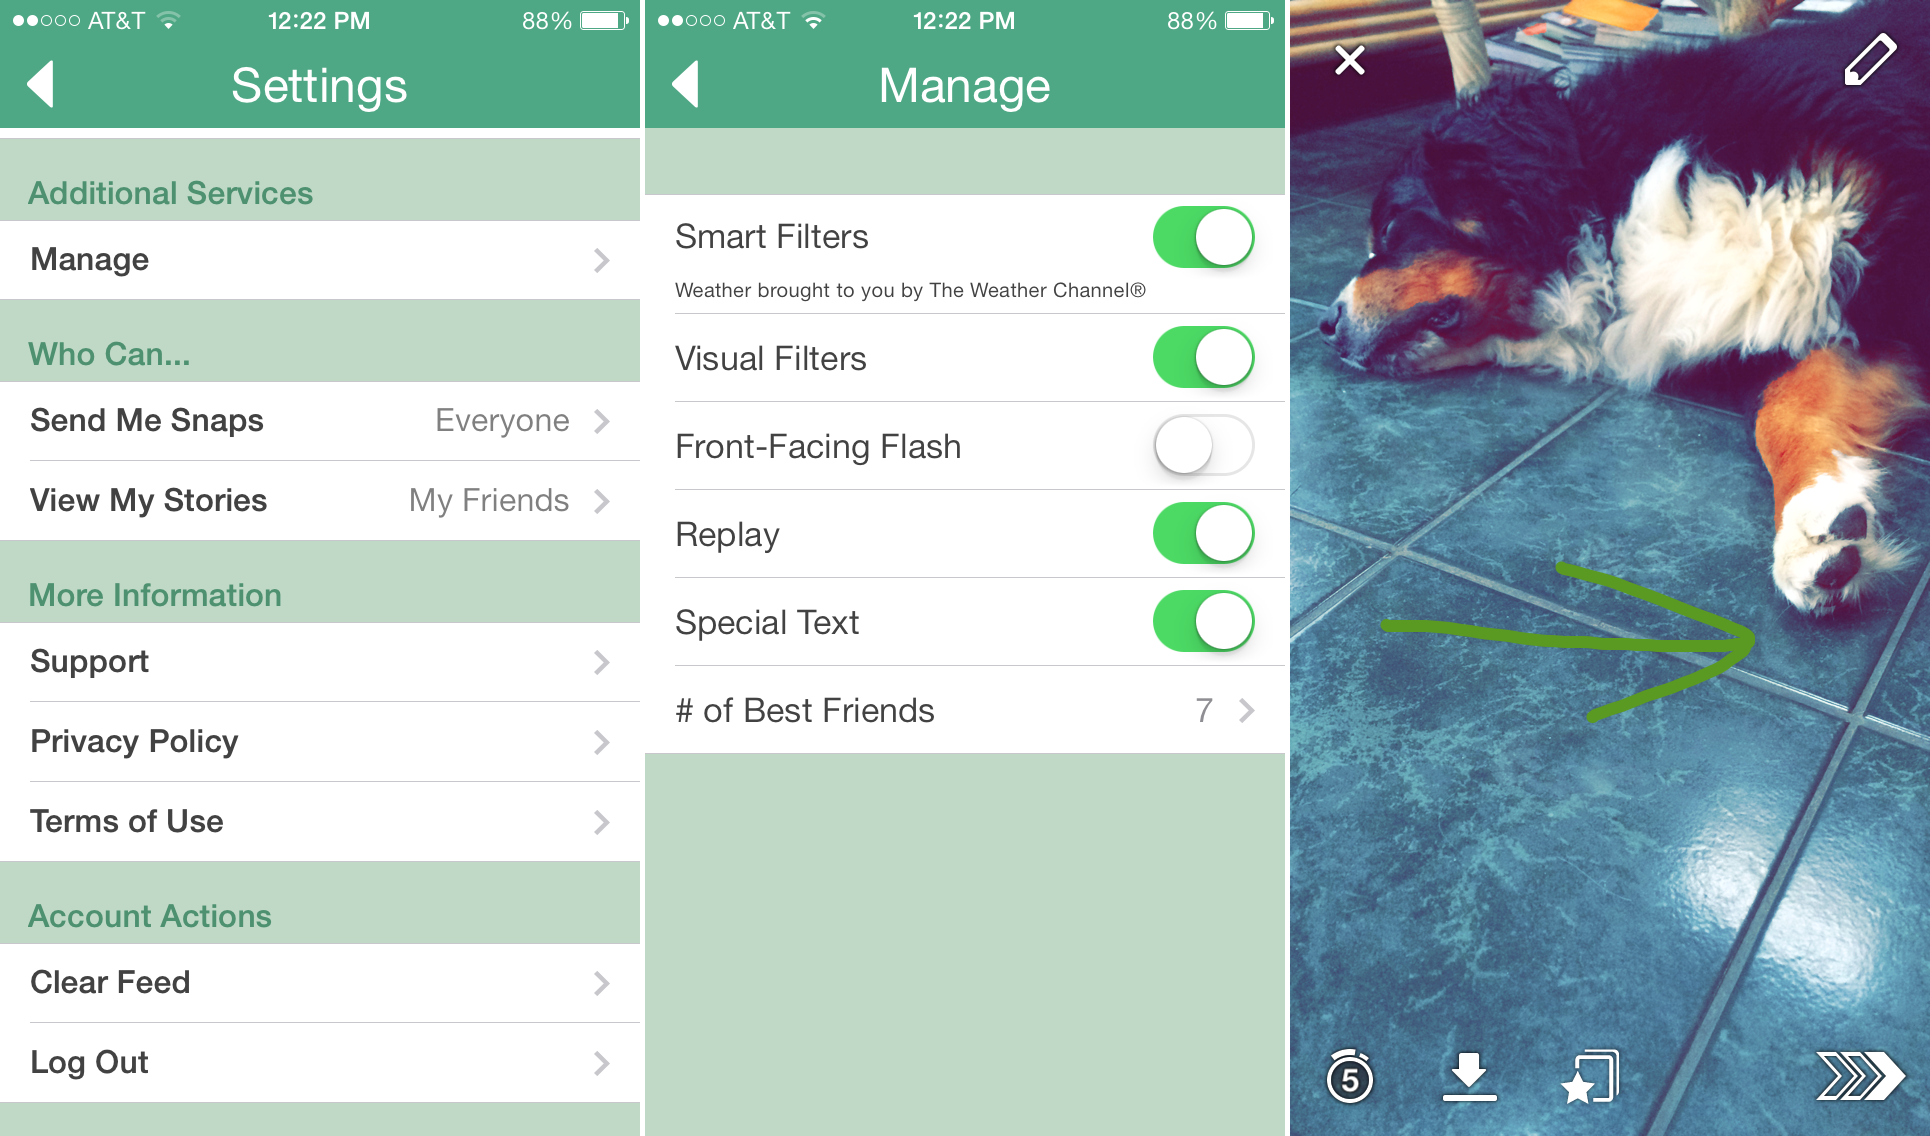 7 Things You Didn't Know You Could Do On Snapchat